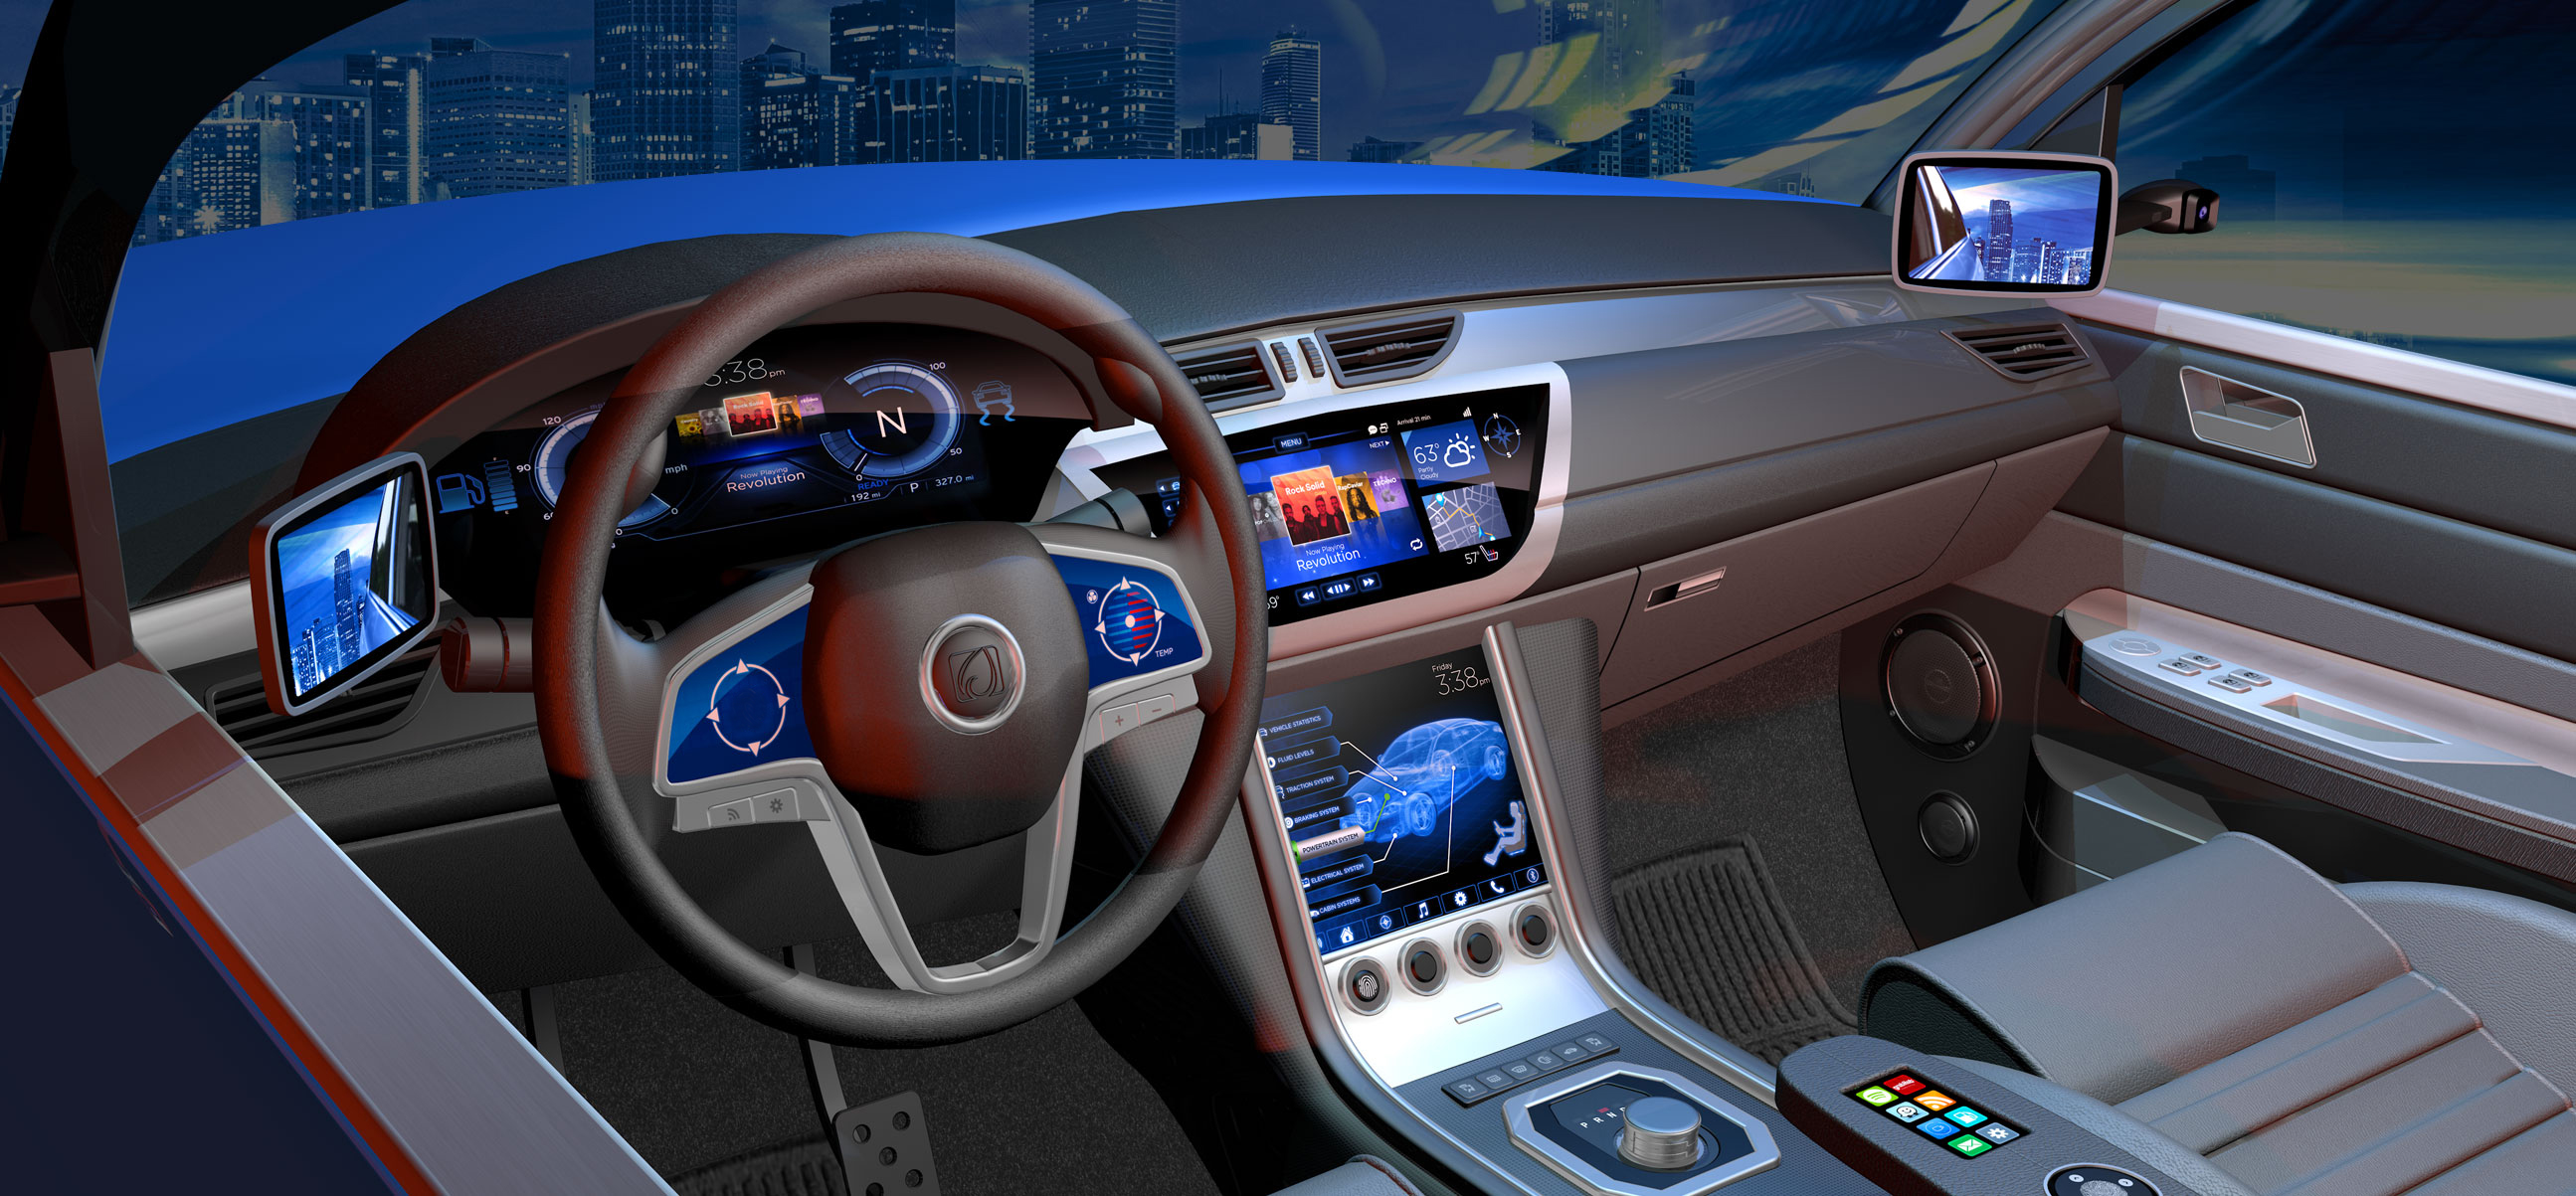 Automotive Image - Display , TDDI, Touch and Biometrics